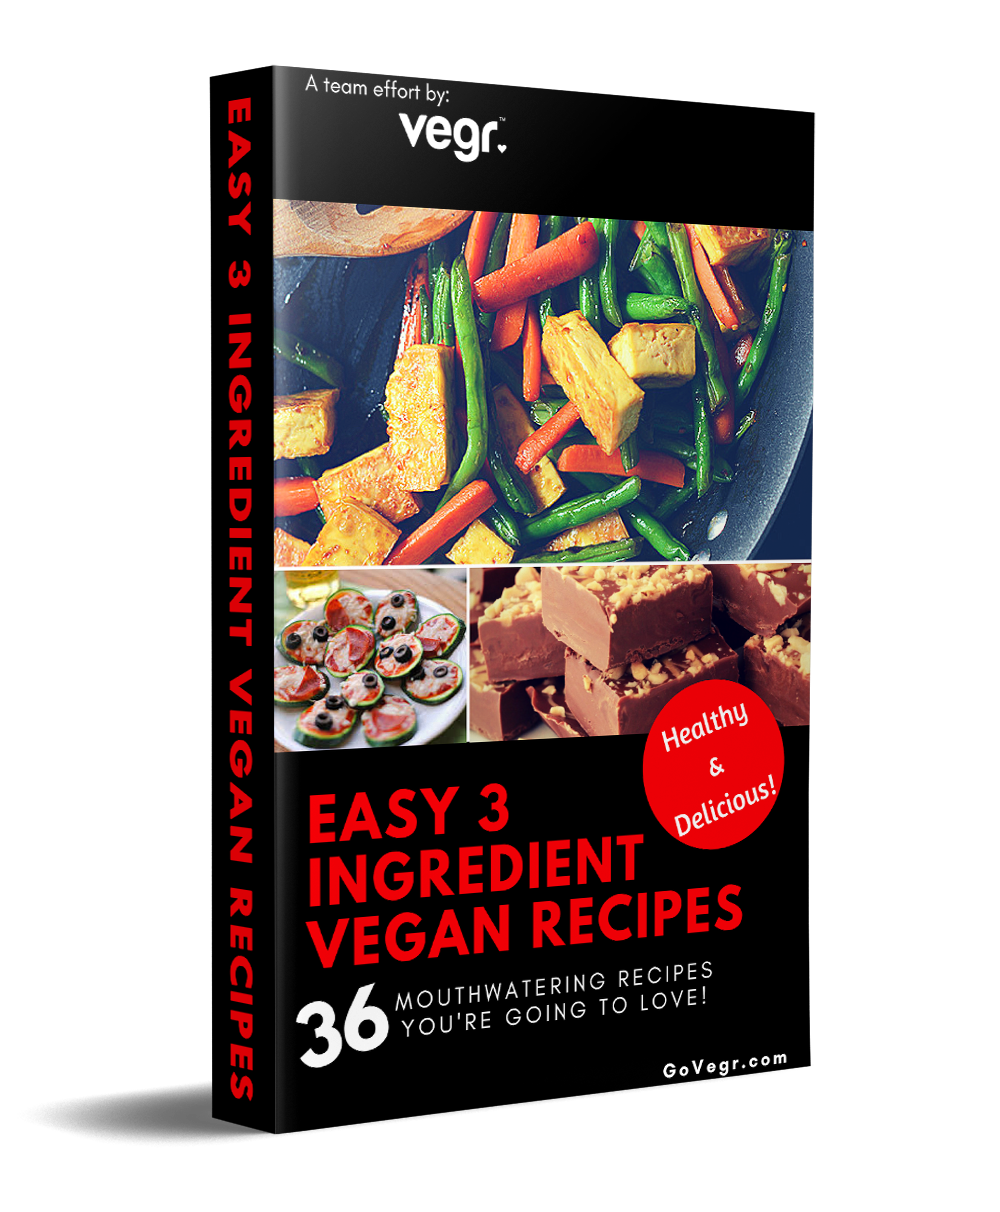 Easy 3 ingredient vegan recipes